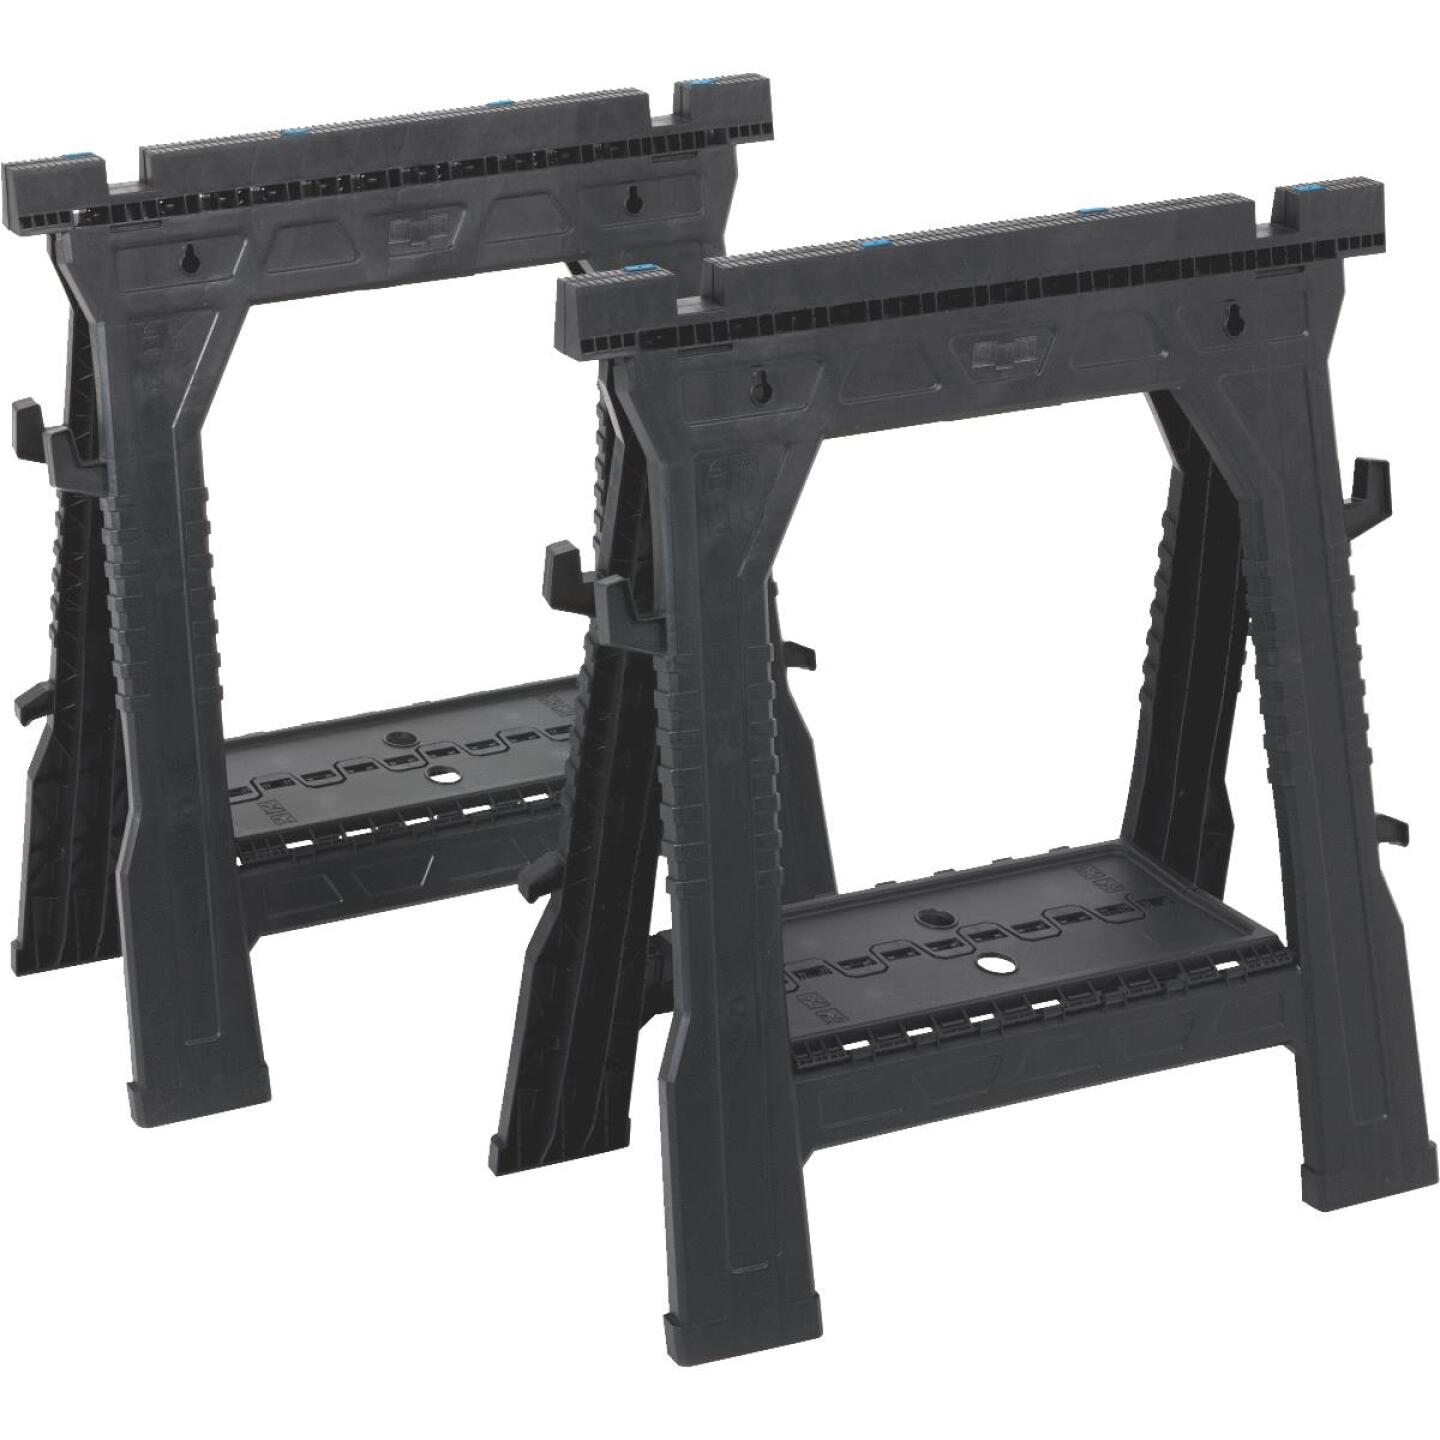 Channellock 27 In. L Plastic Folding Sawhorse Set, 1000 Lb. Capacity (2-Pack) Image 1